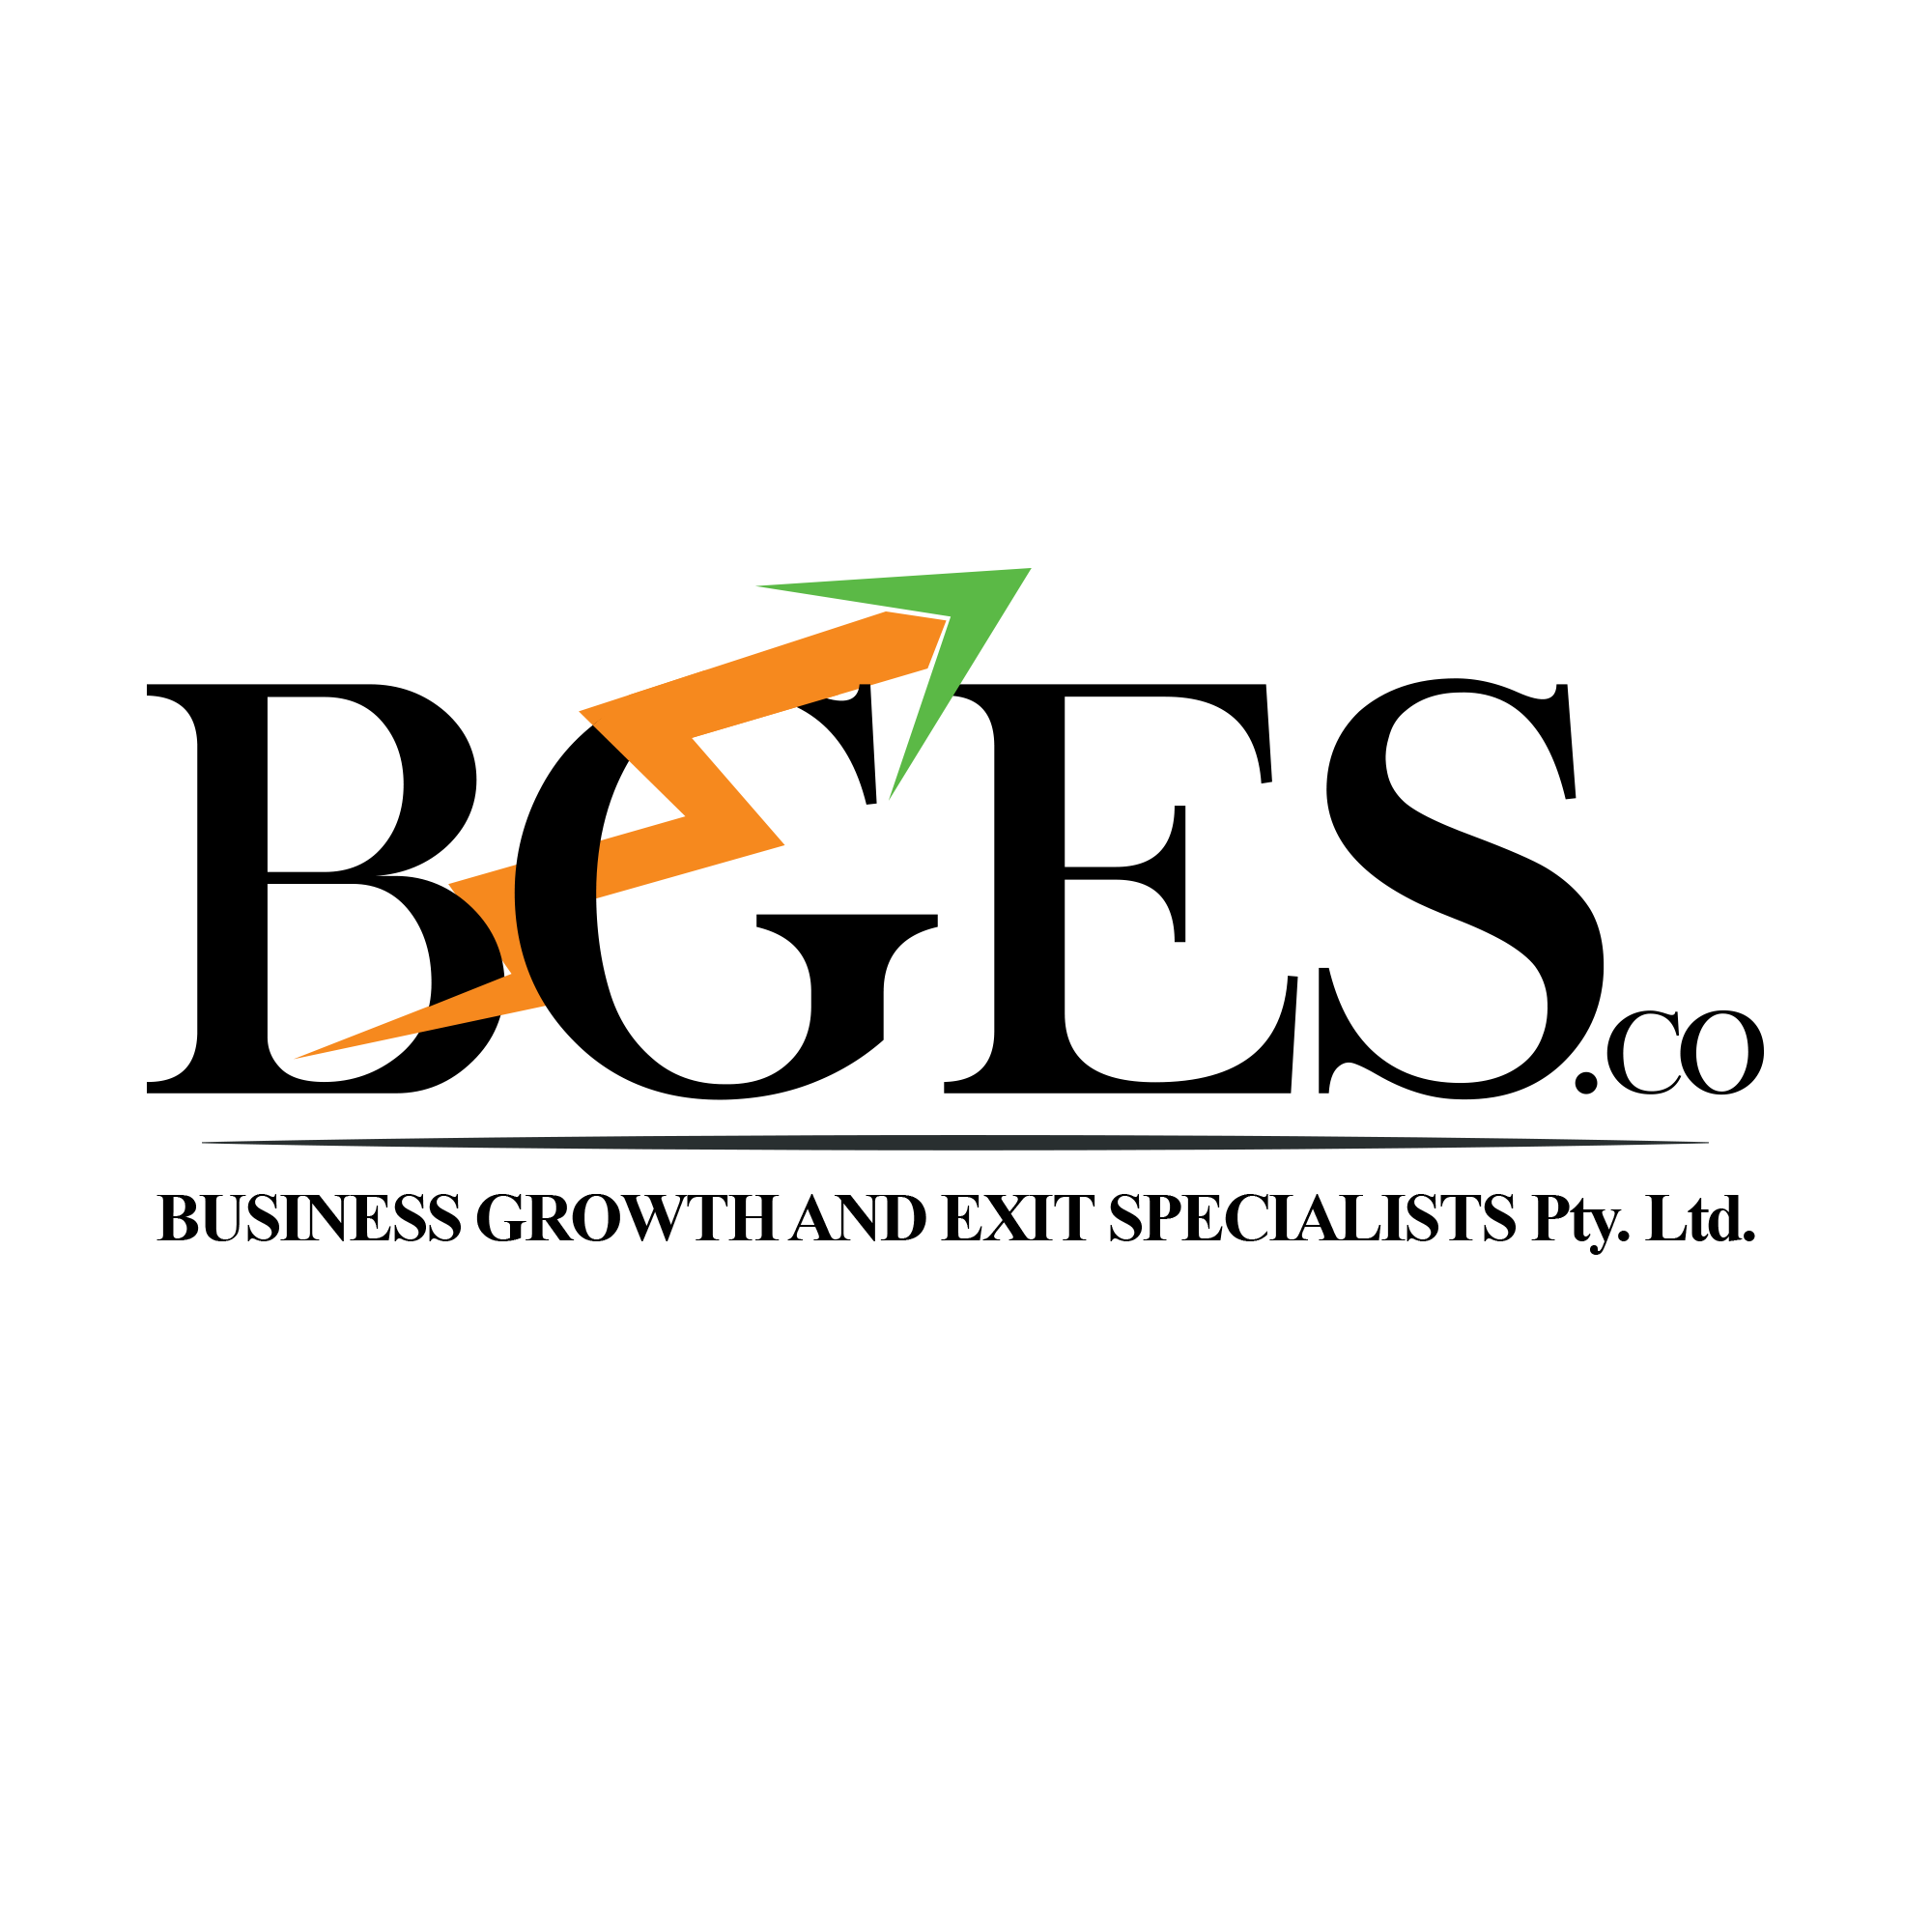 BGES.co -Business Growth and Exit Specialists